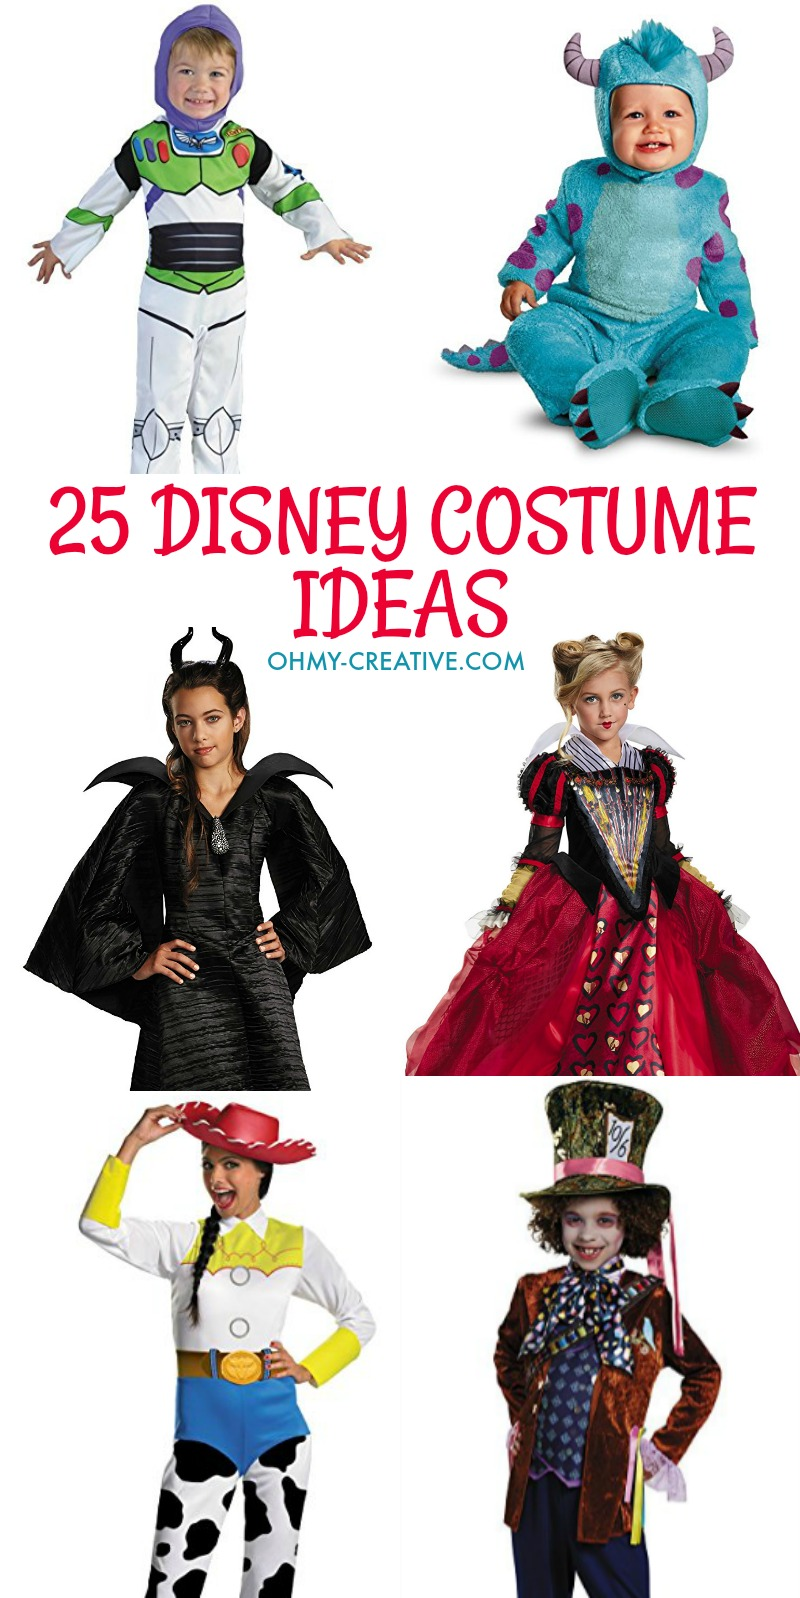 25 disney costume ideas on amazon - oh my creative